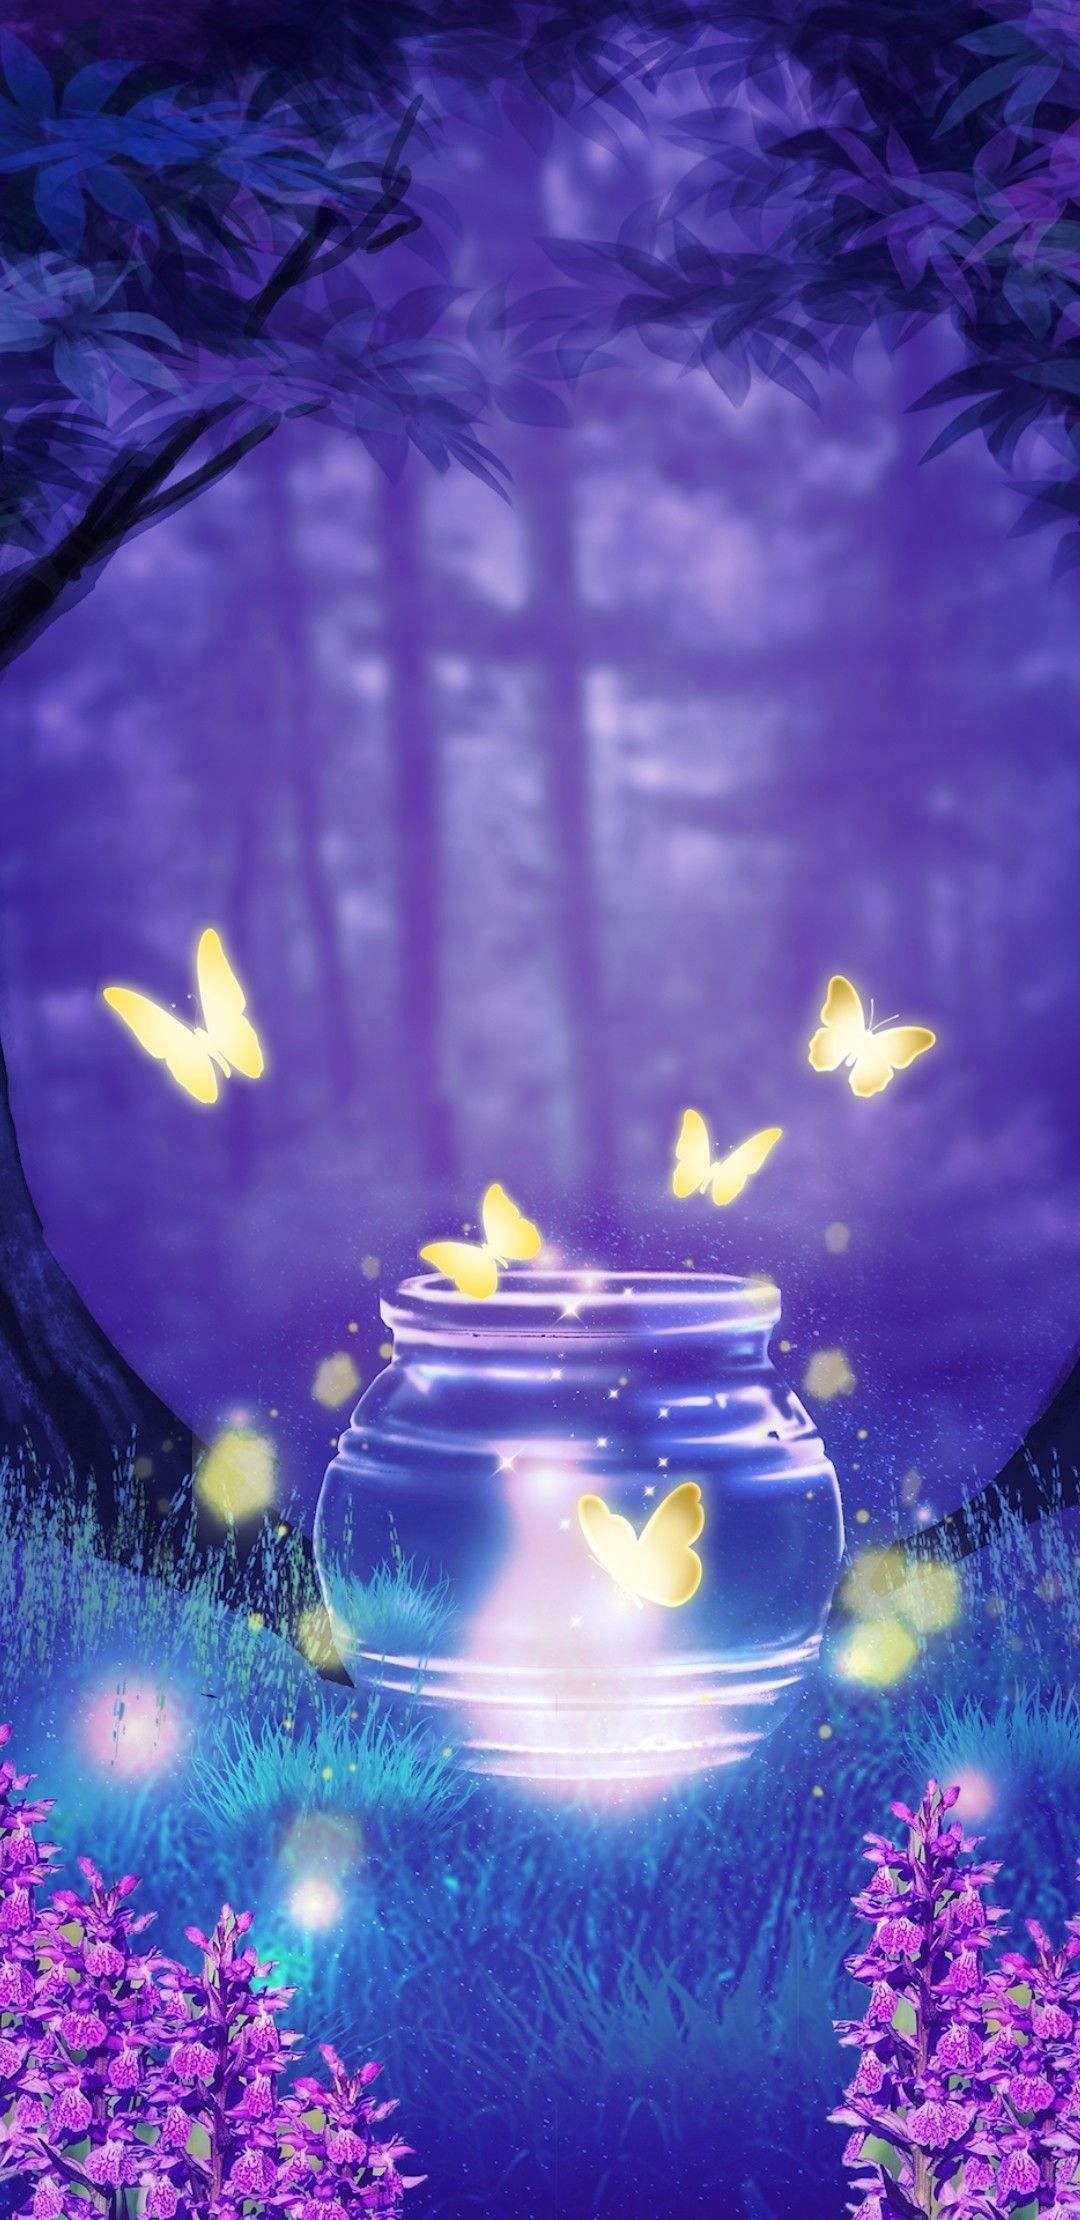 Glowing Butterfly Night Magical Beautiful Nature Wallpaper Beautiful Wallpapers Pretty Wallpapers